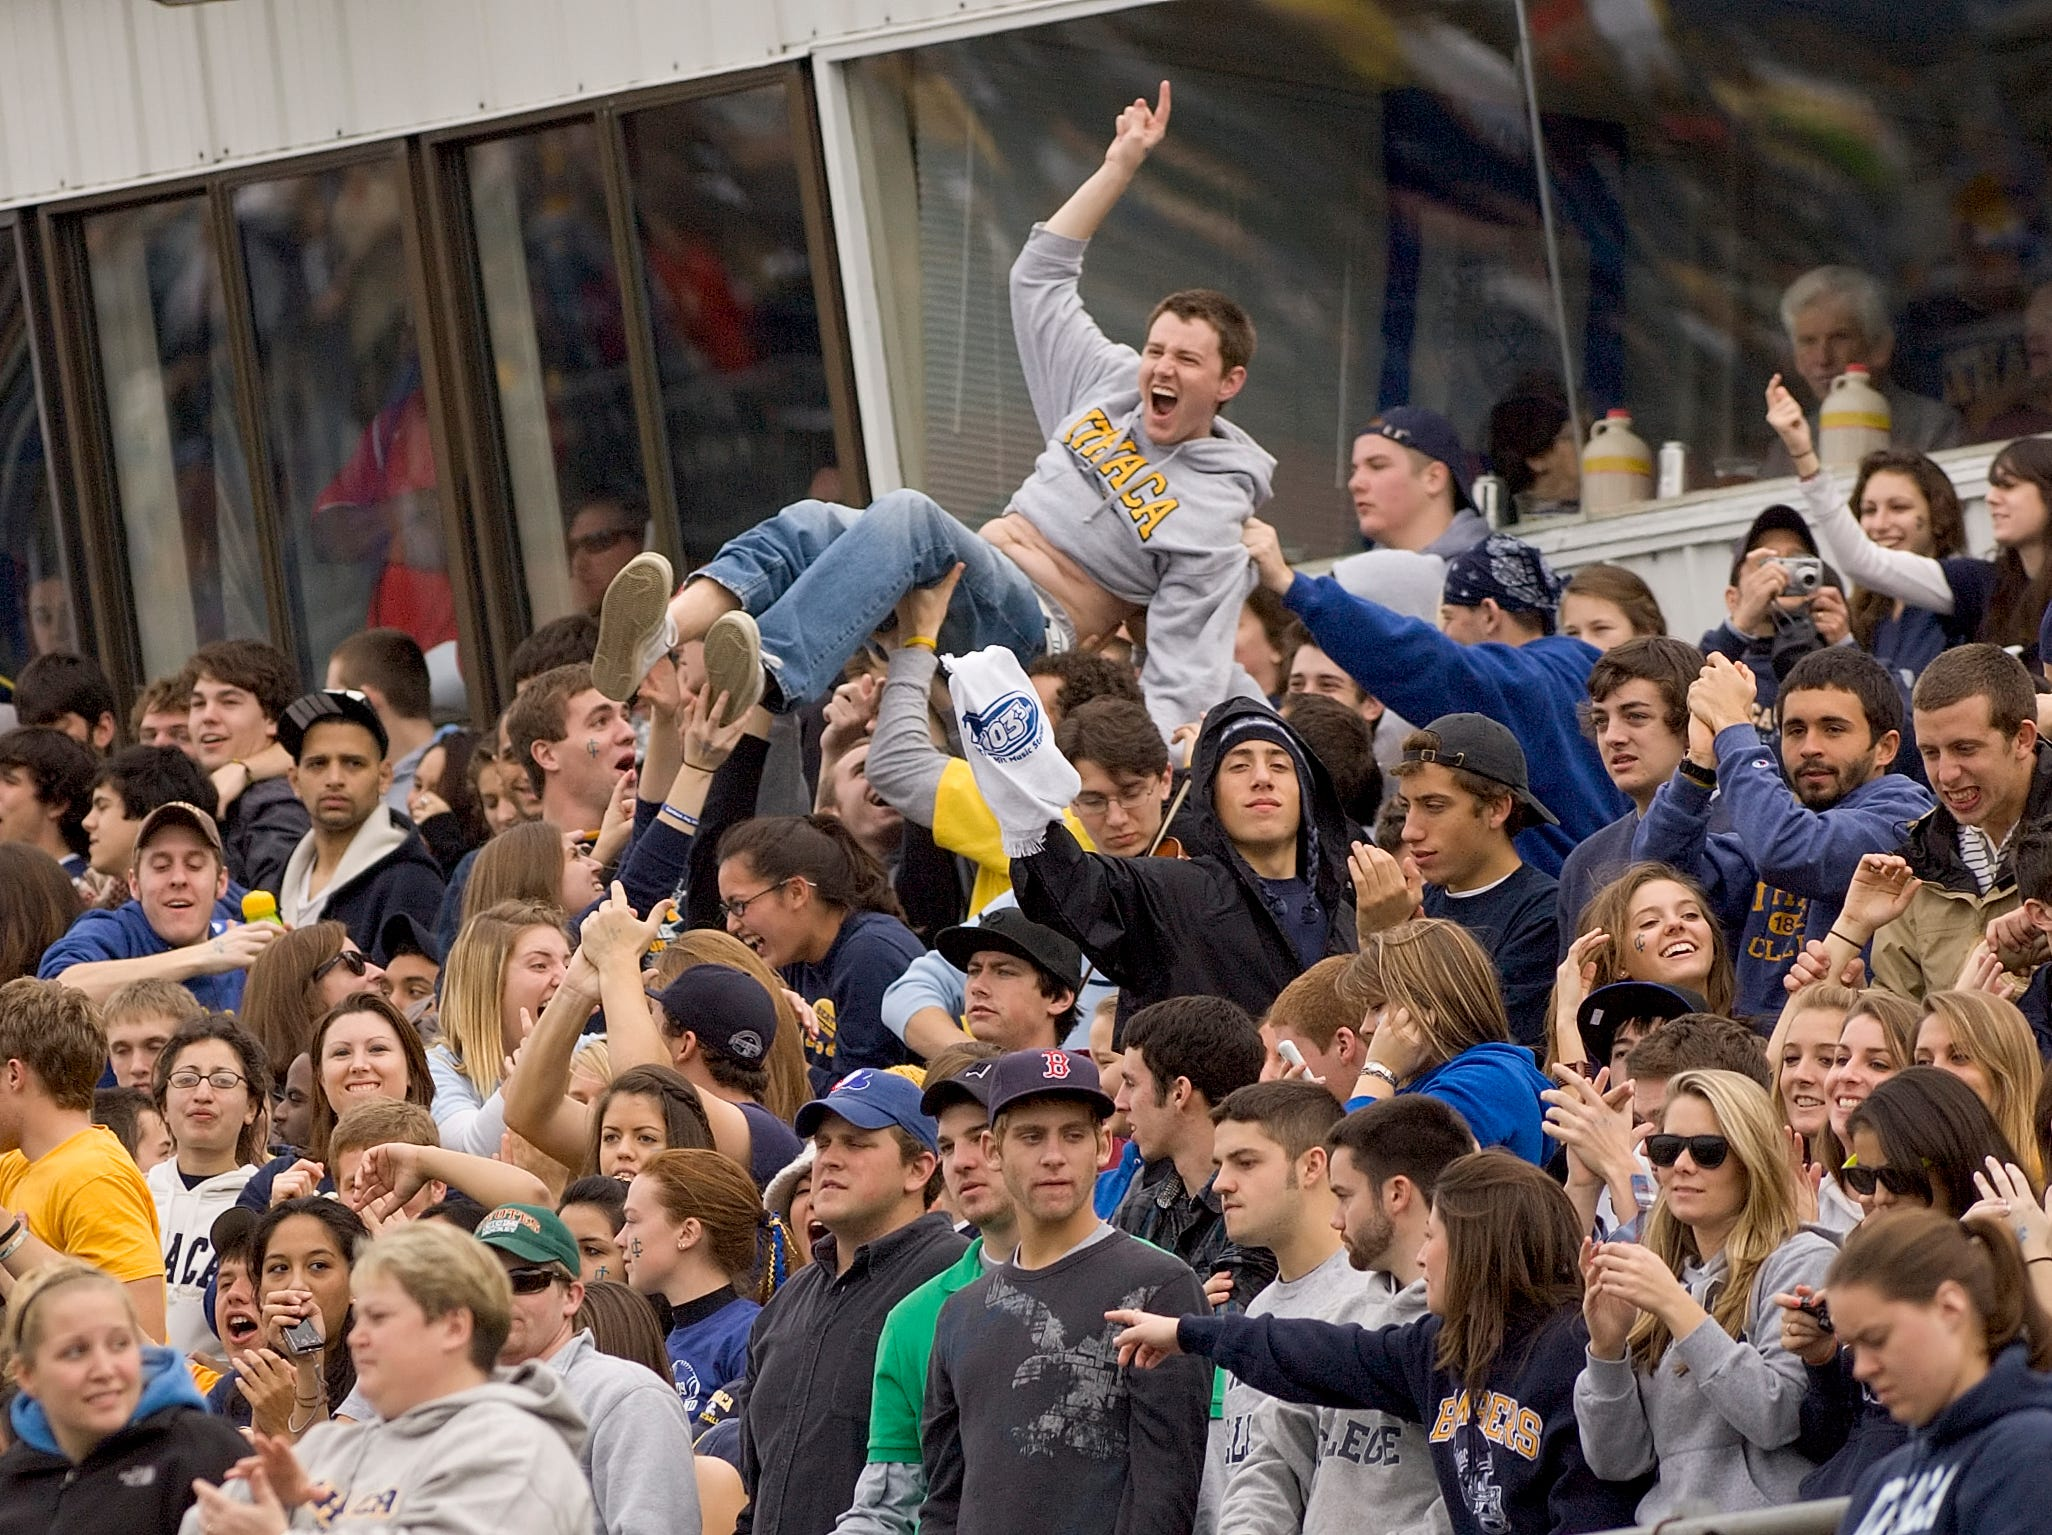 2009: Ithaca College fans celebrate the first touchdown of the game Saturday afternoon during the annual Cortaca Jug game against Cortland.